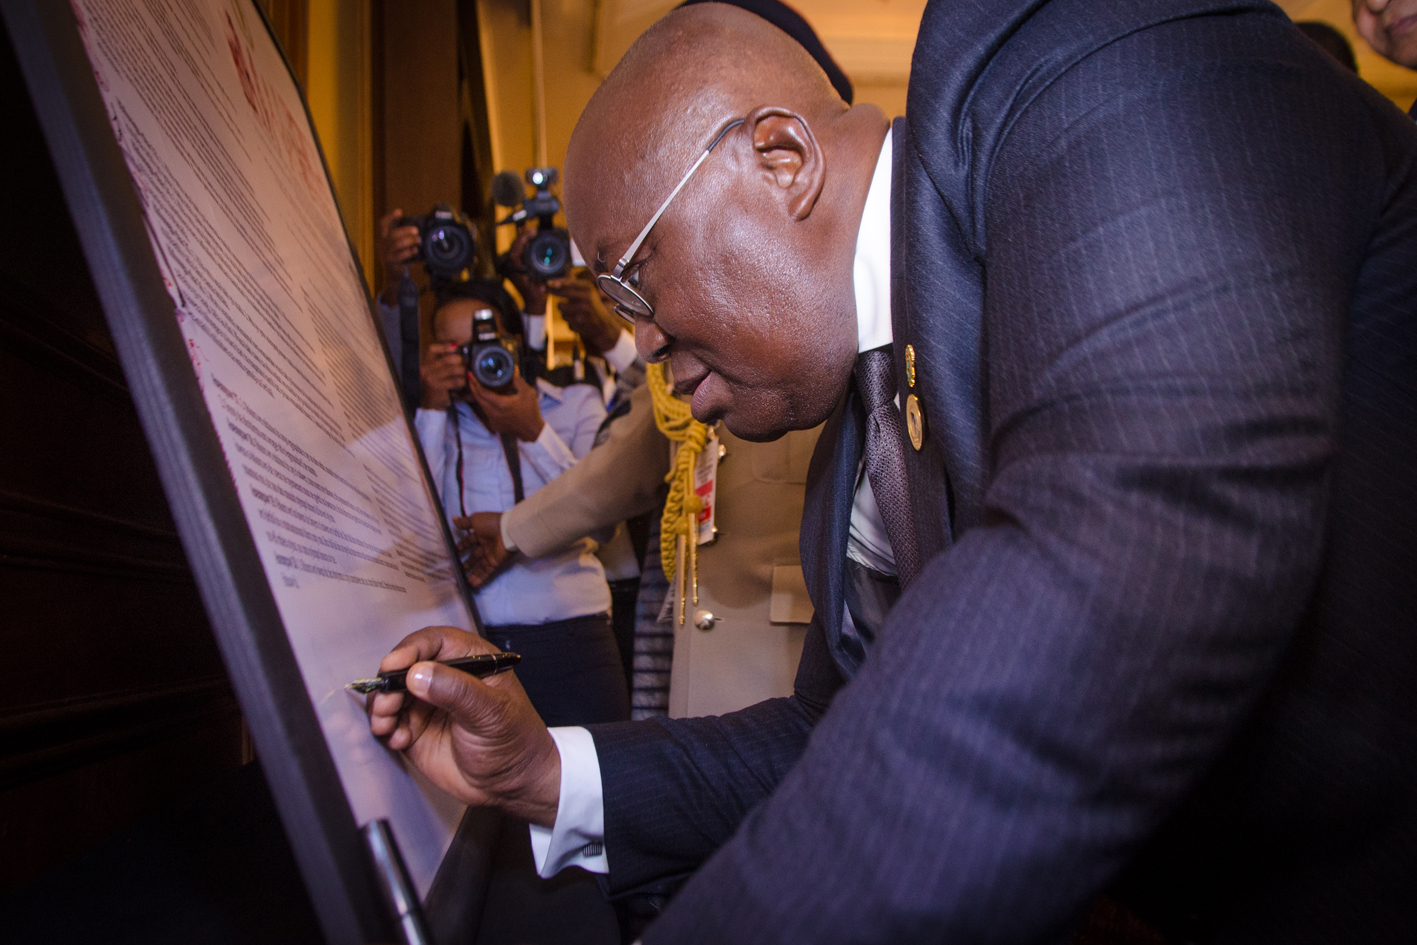 The President of Ghana, Nana Akufo-Addo launched the celebration of the 70th anniversary of the Universal Declaration of Human Rights on the margins of the 30th African Union Summit in Addis Ababa. © OHCHR